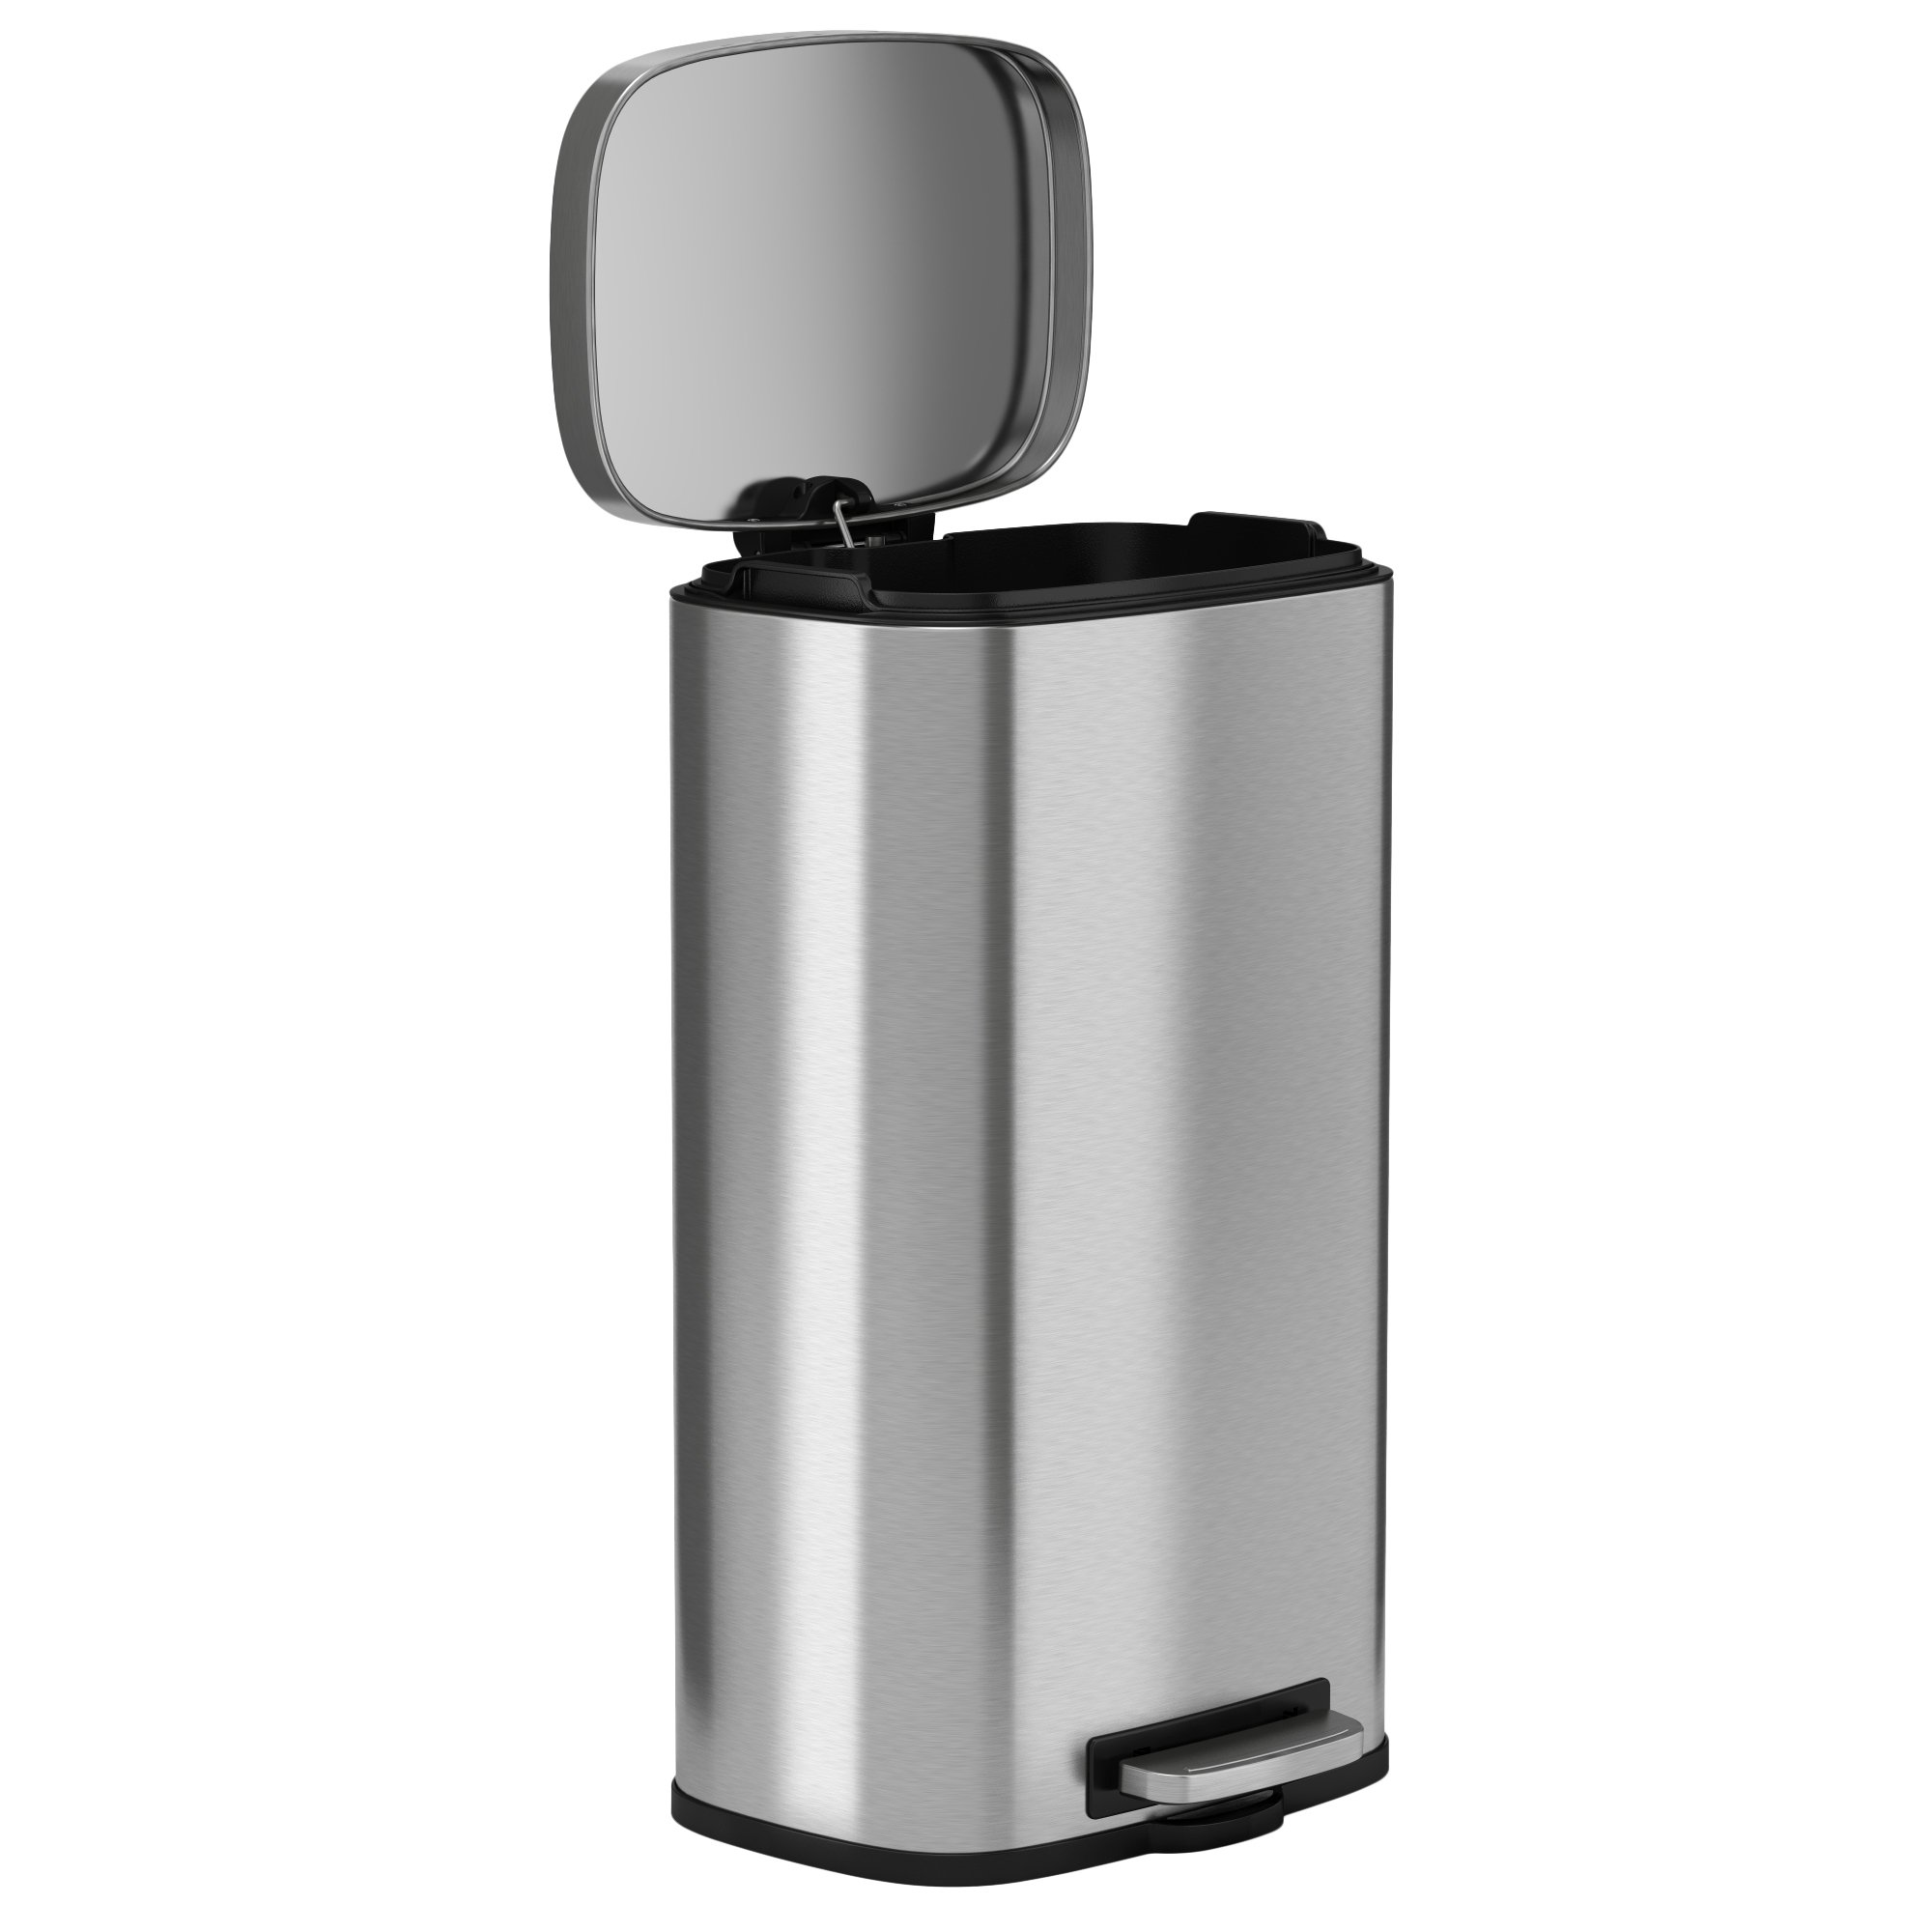 iTouchless SoftStep 8 Gallon Stainless Steel Step Trash Can, 30 Liter Pedal Kitchen Trash Can Perfect for Office, Home and Kitchen by iTouchless (Image #7)